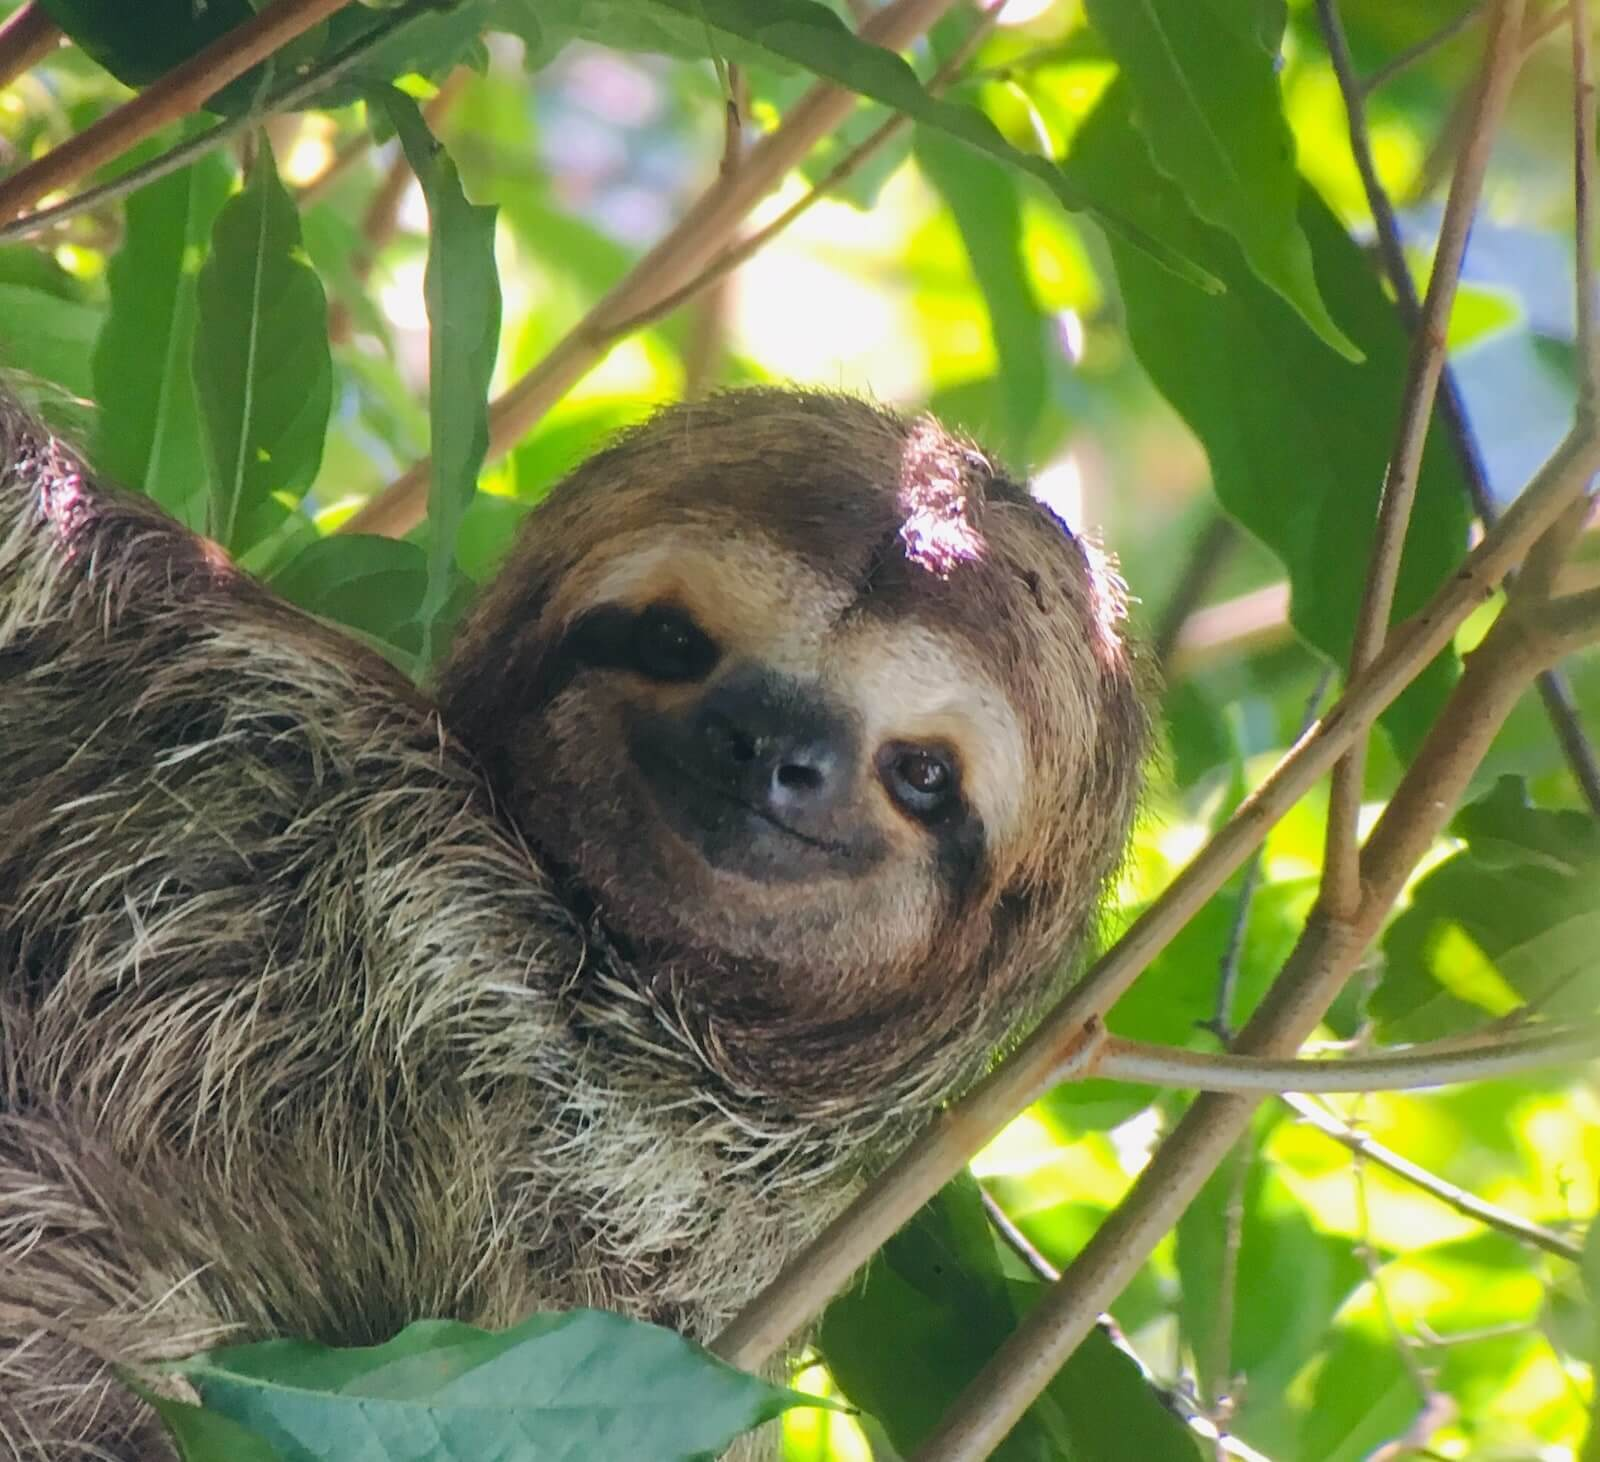 A sloth photographed during a wildlife tour in Costa Rica